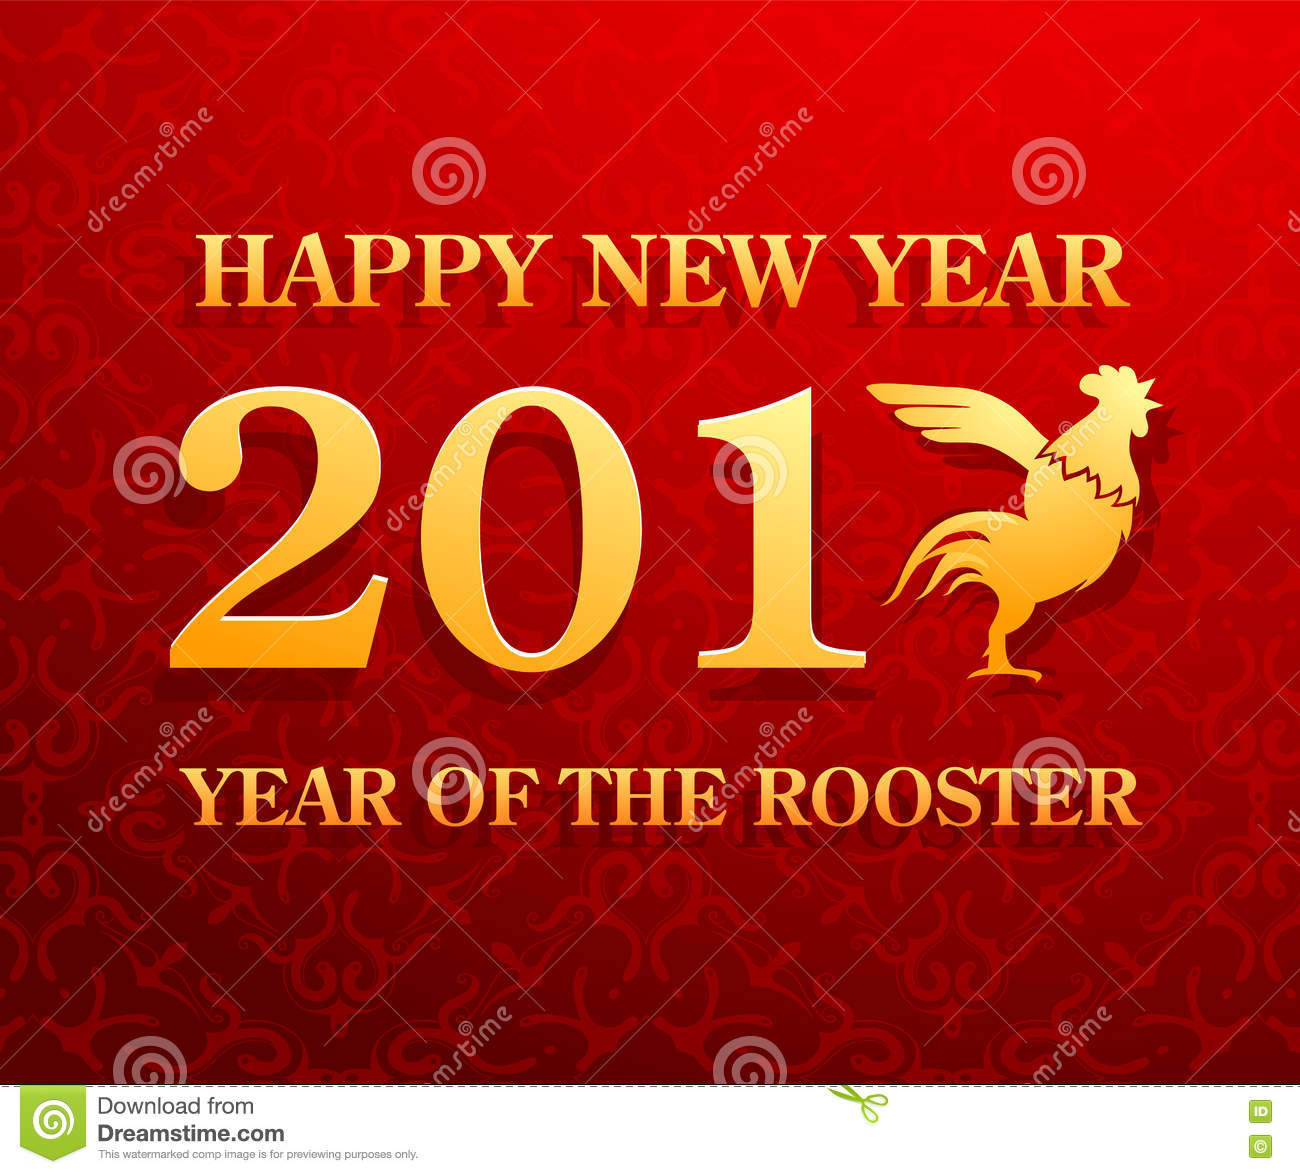 Happy New Year 2017 Greetings With Rooster Symbol Stock Vector